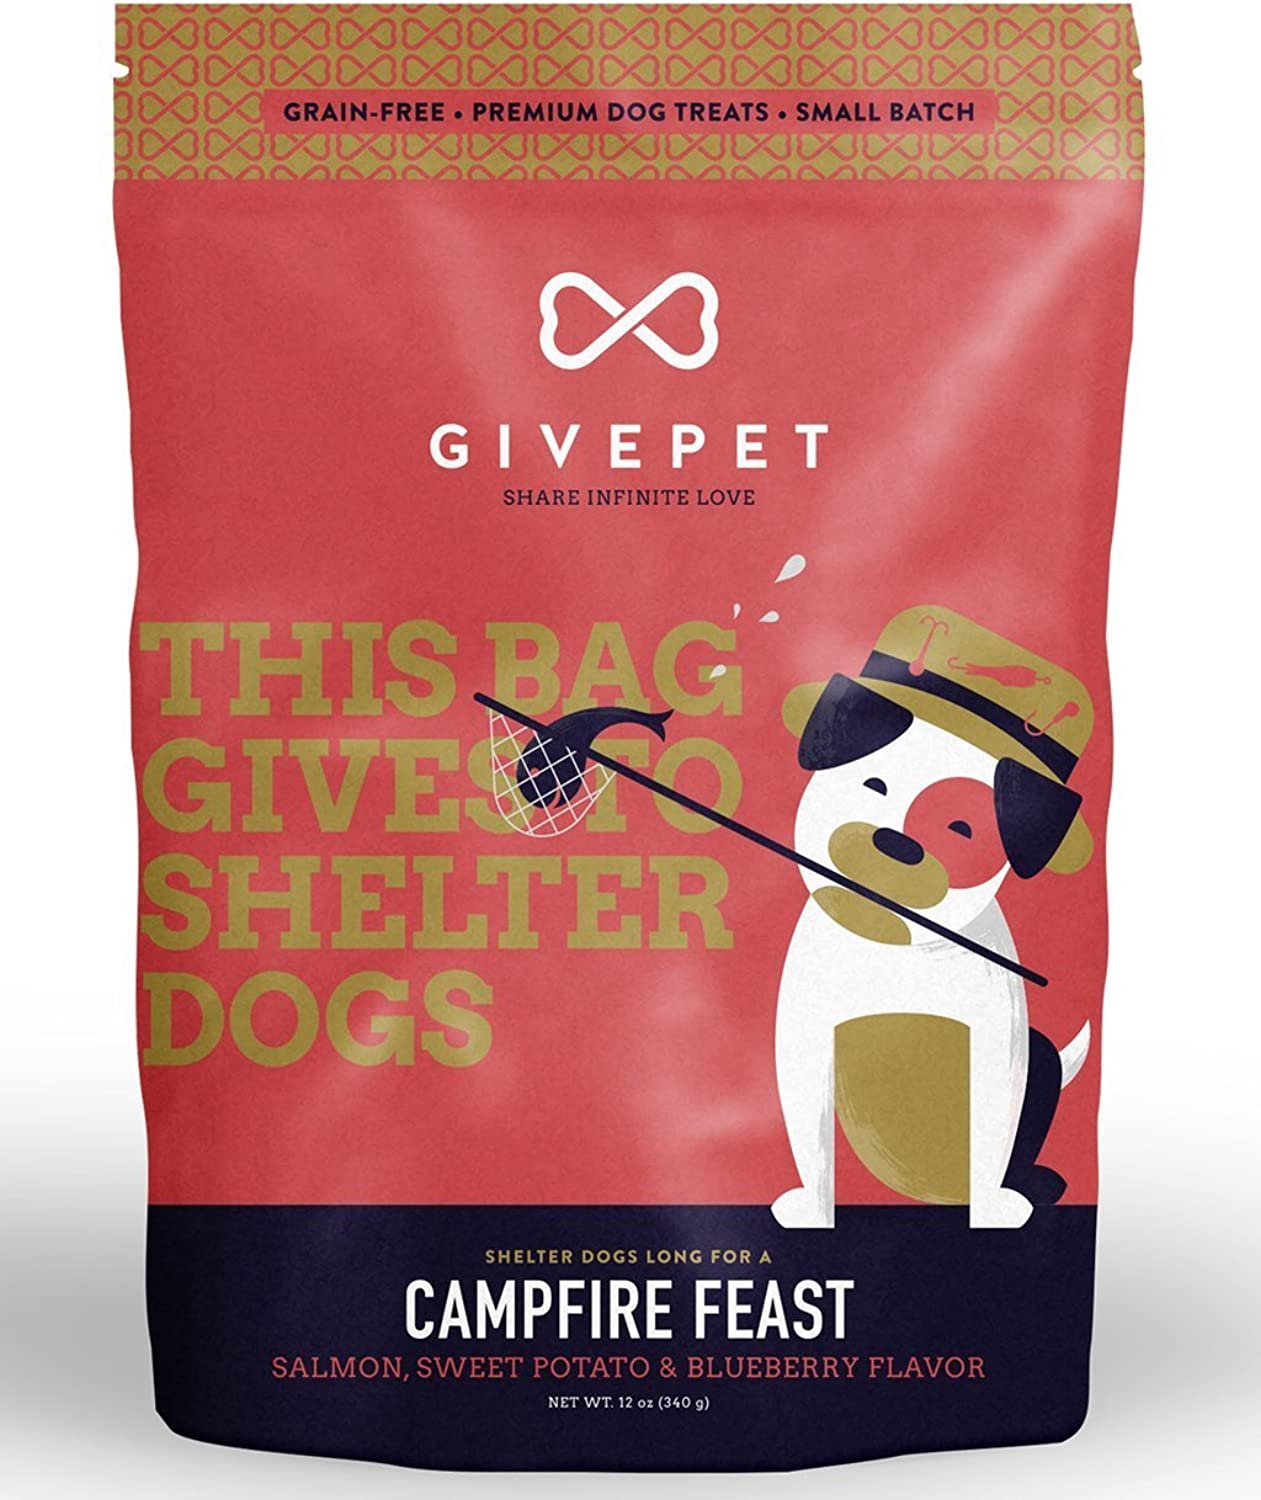 GivePet Campfire Feast Pet Treats Salmon Sweet Potato & blueeberry Flavor in 12 oz Bag